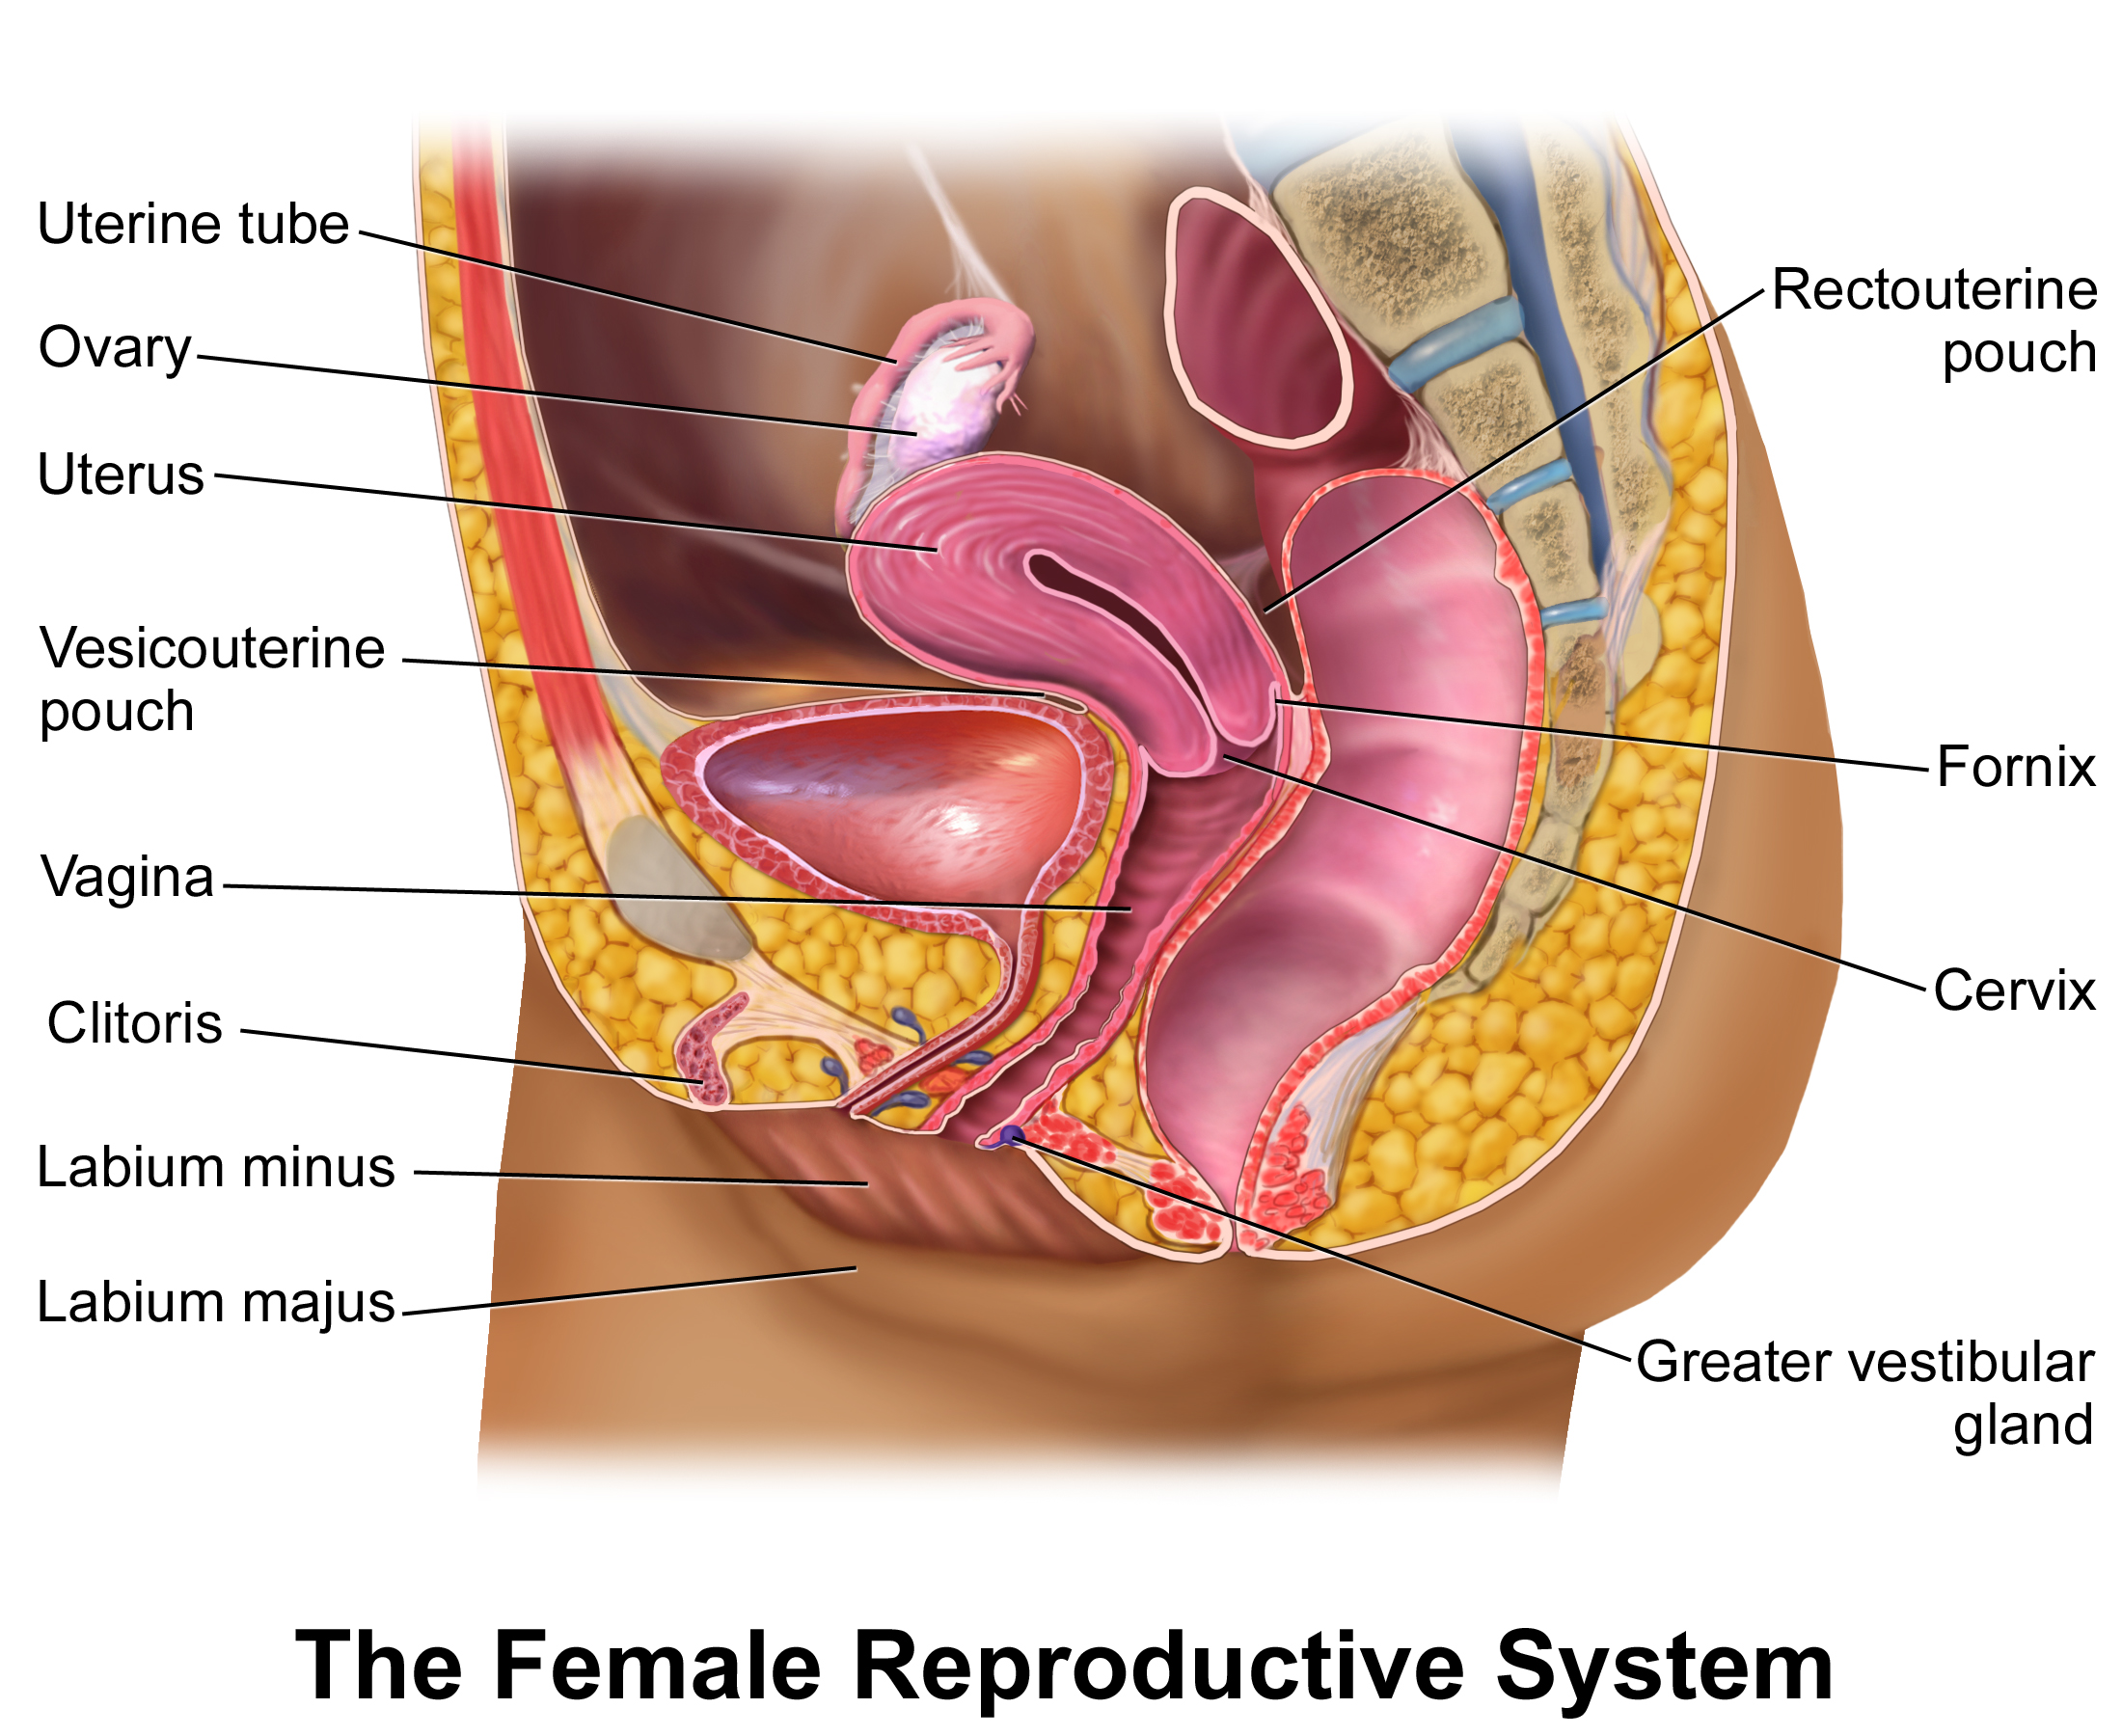 FEMALE REPRODUCTIVE SYSTEM DIAGRAM - Unmasa Dalha